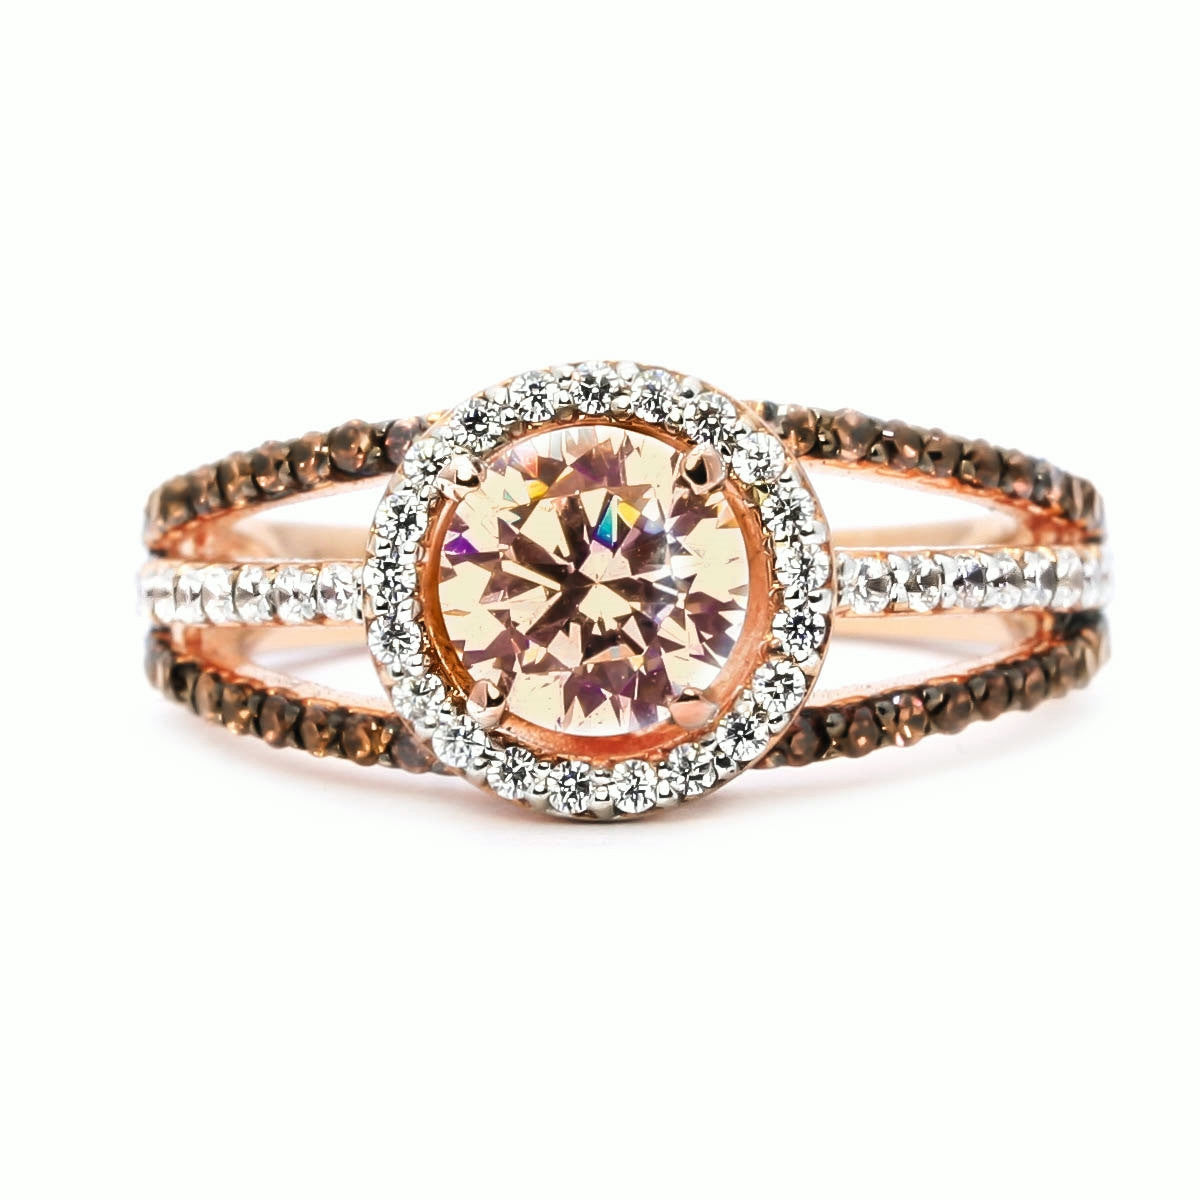 Floating Halo Rose Gold, White & Brown Diamonds,6.5 mm Morganite, Engagement Ring, Anniversary Ring - MG94646